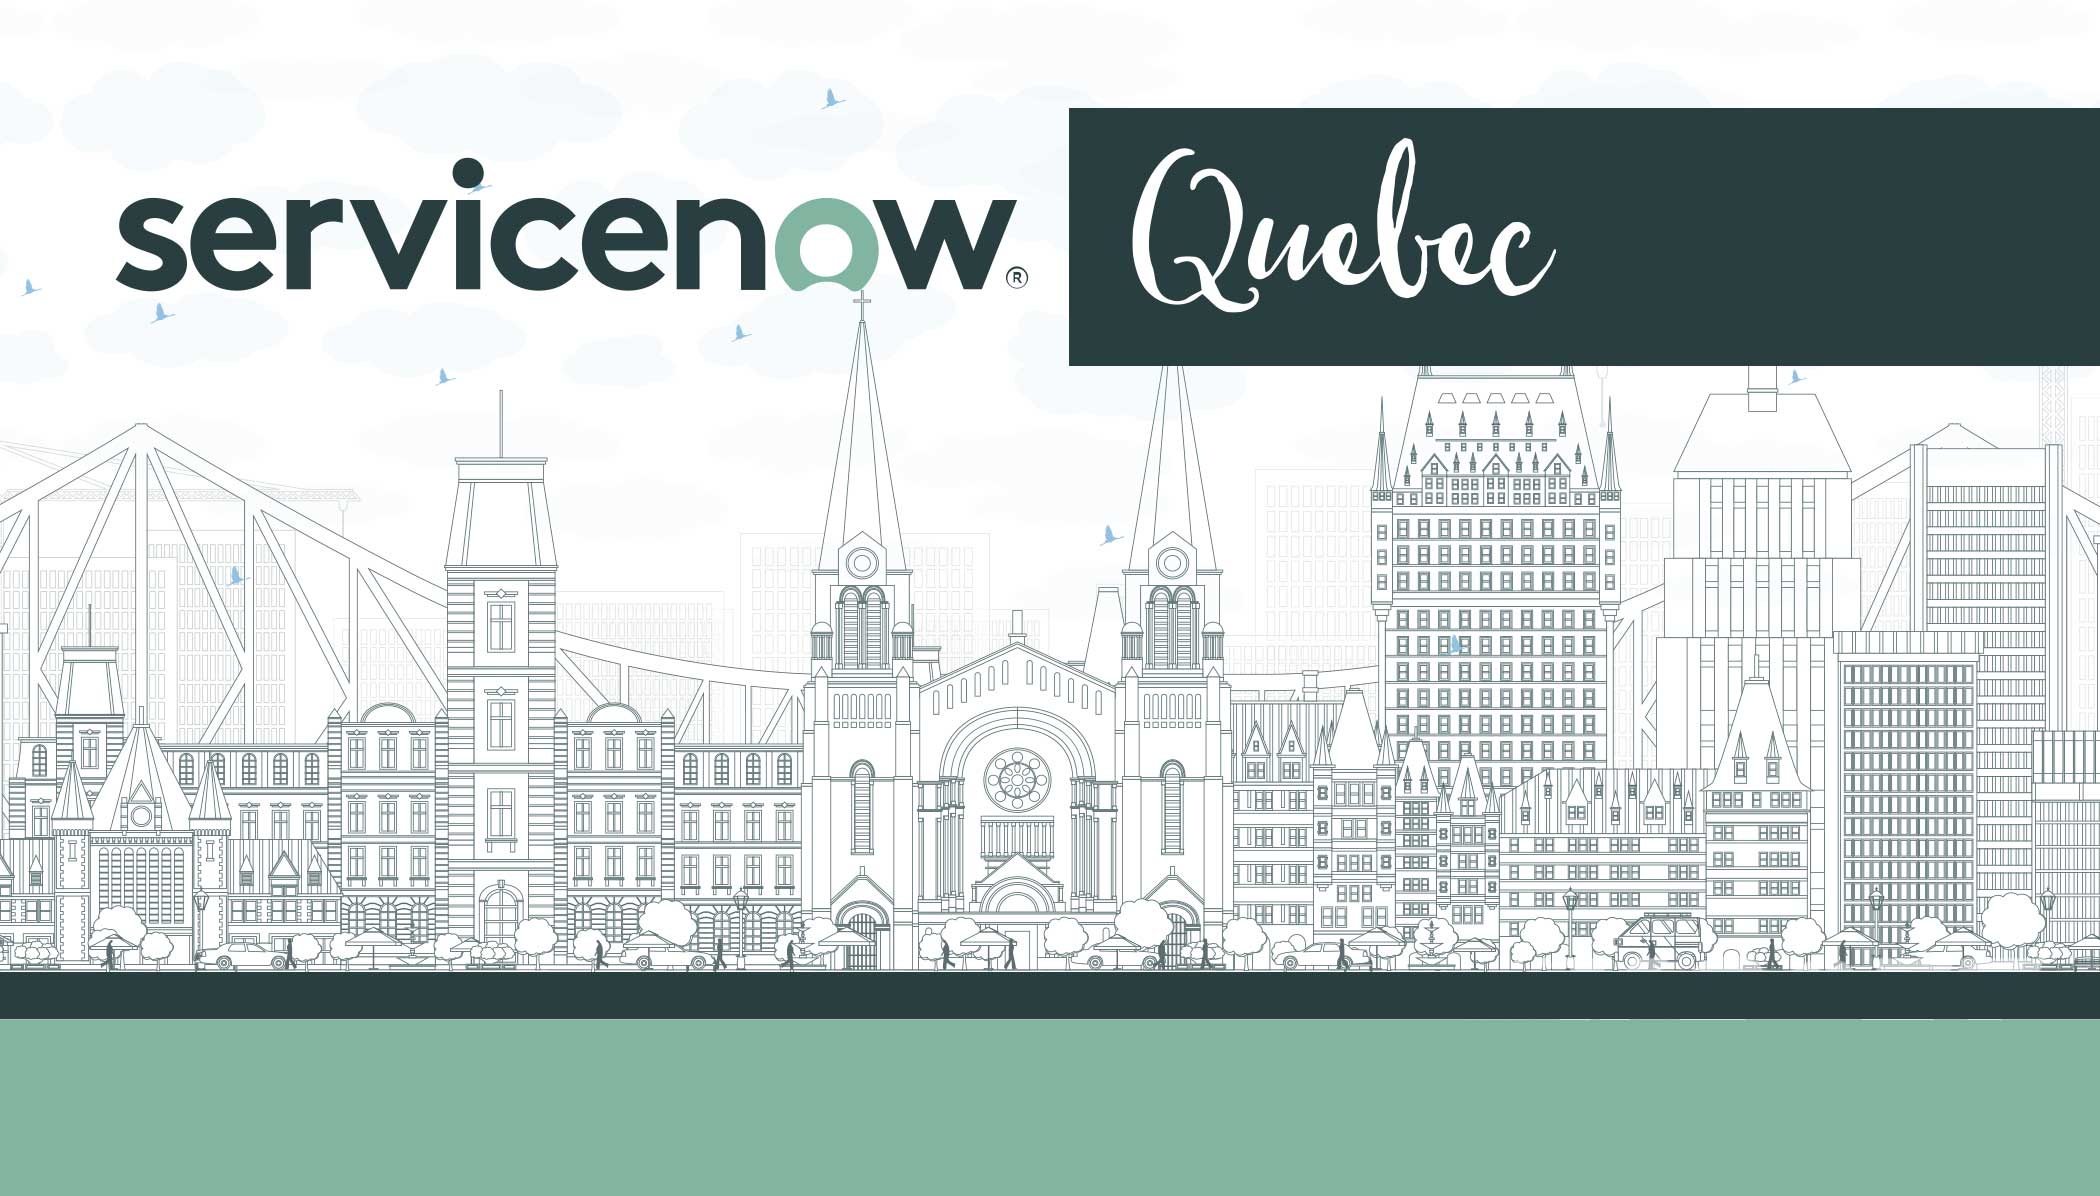 New and Improved Features of the ServiceNow Quebec Release